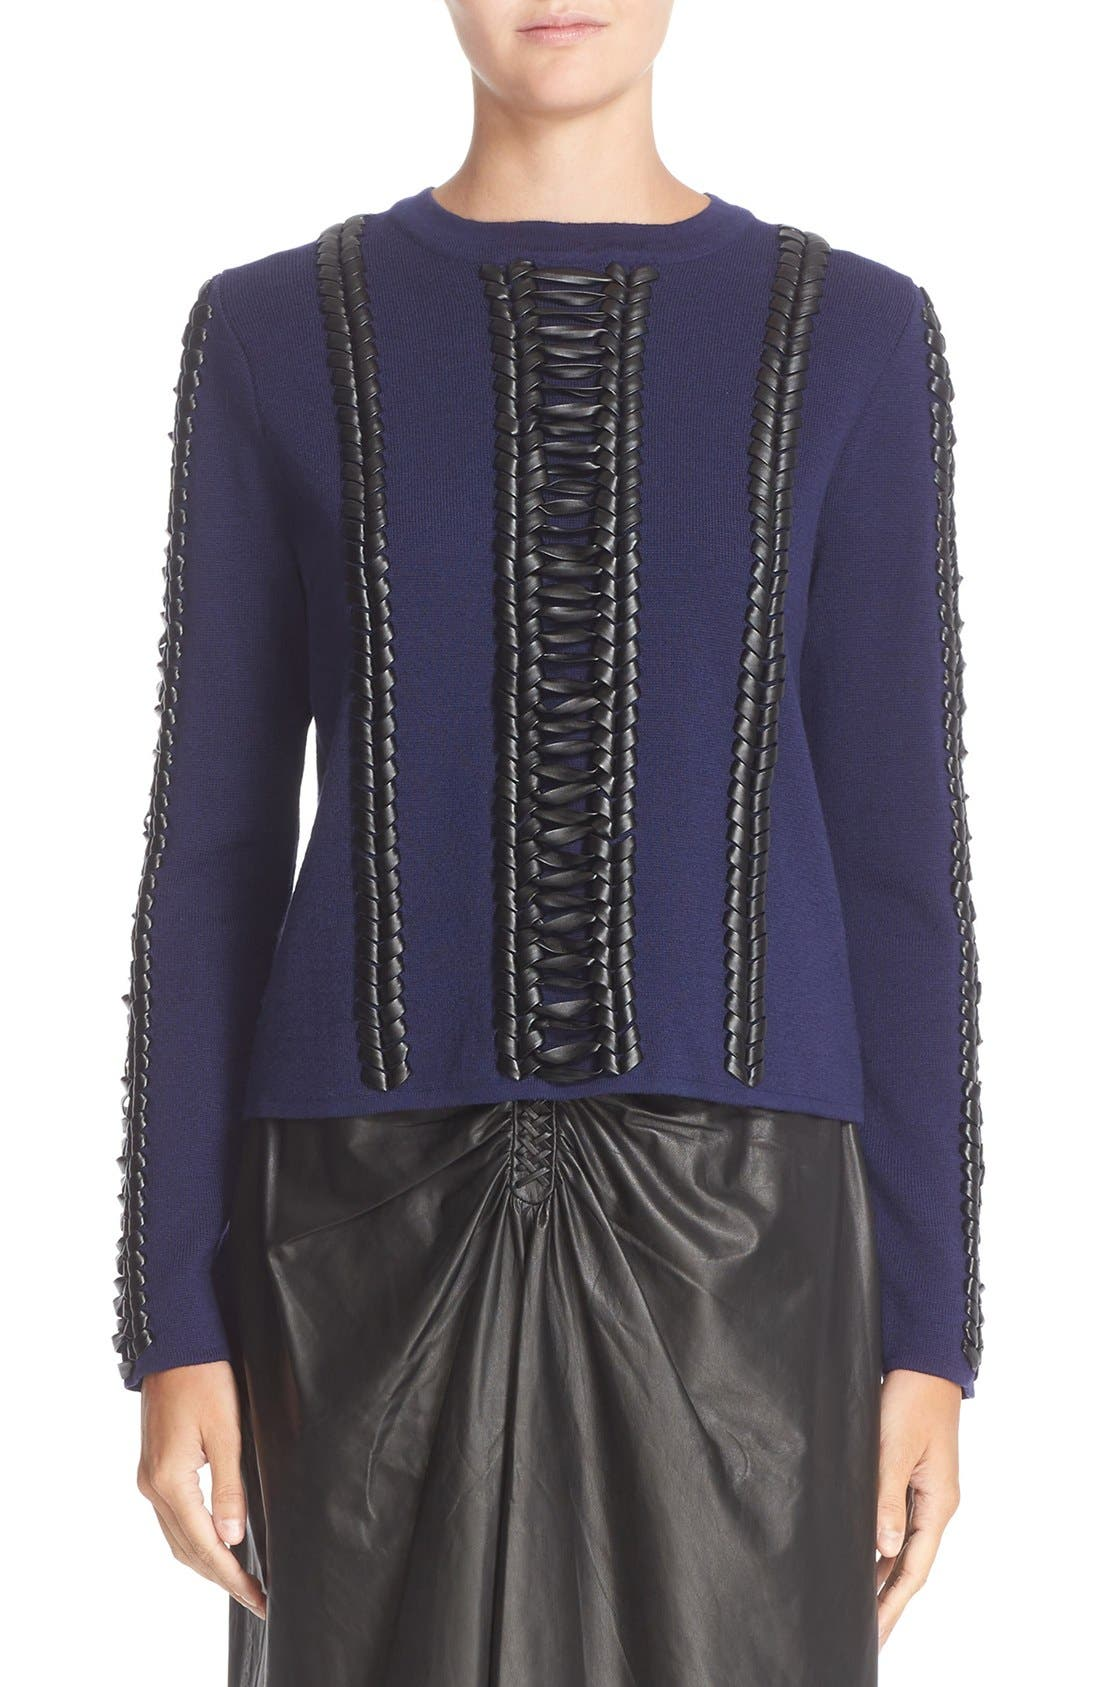 Alternate Image 1 Selected - Altuzarra Deals Lace Detail Wool Sweater